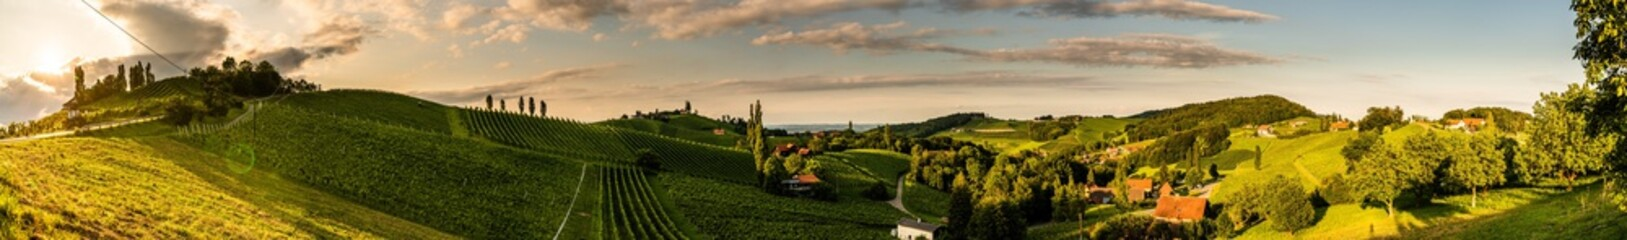 In de dag Honing Panorama view of Vineyards in summer in south Styria, Austria tourist spot, travel destination.